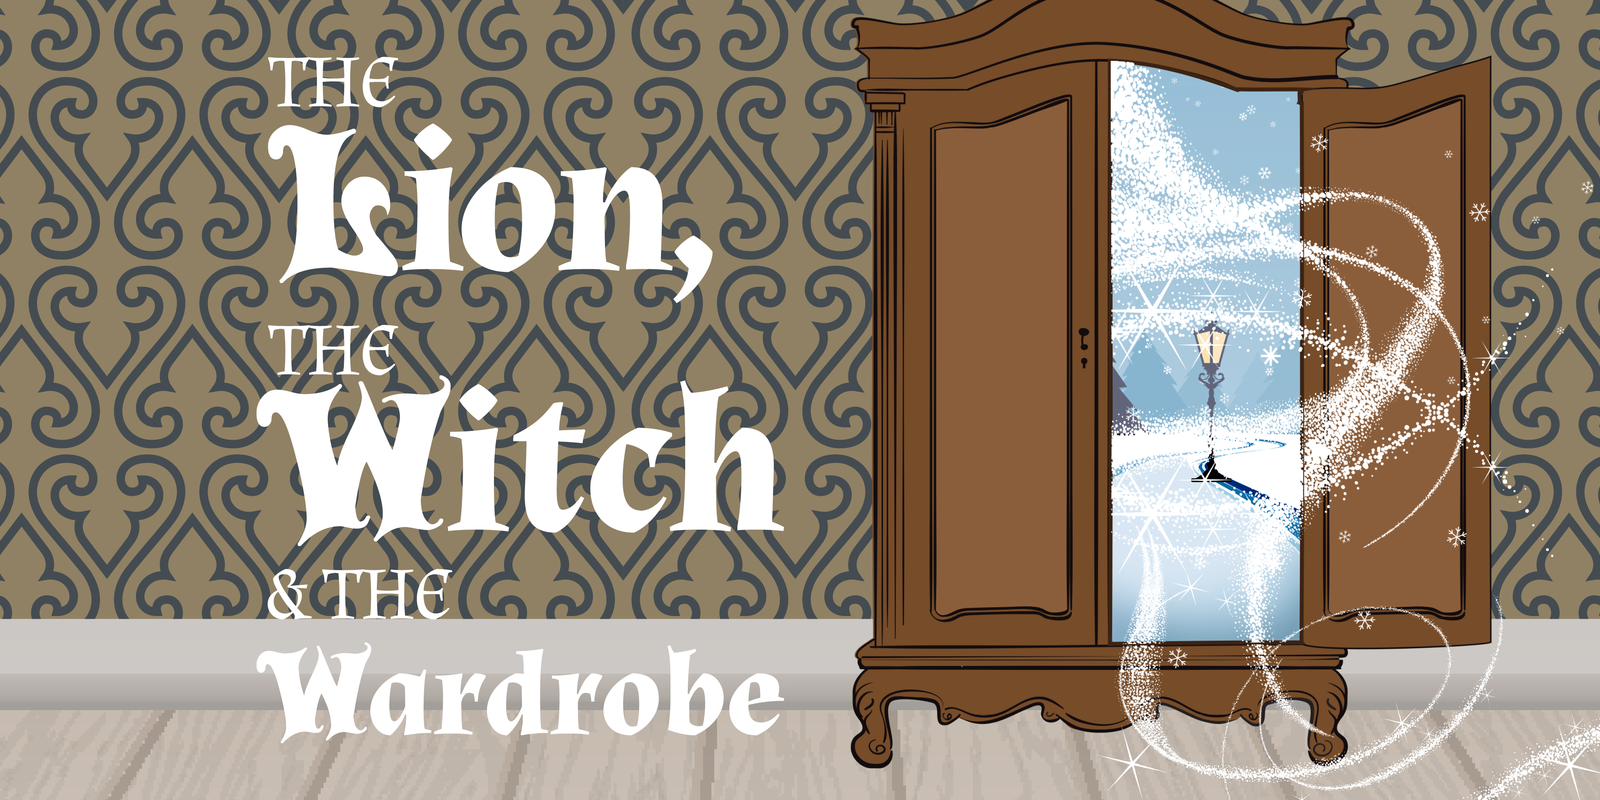 the lion the witch and the wardrobe columbusmakesartcom